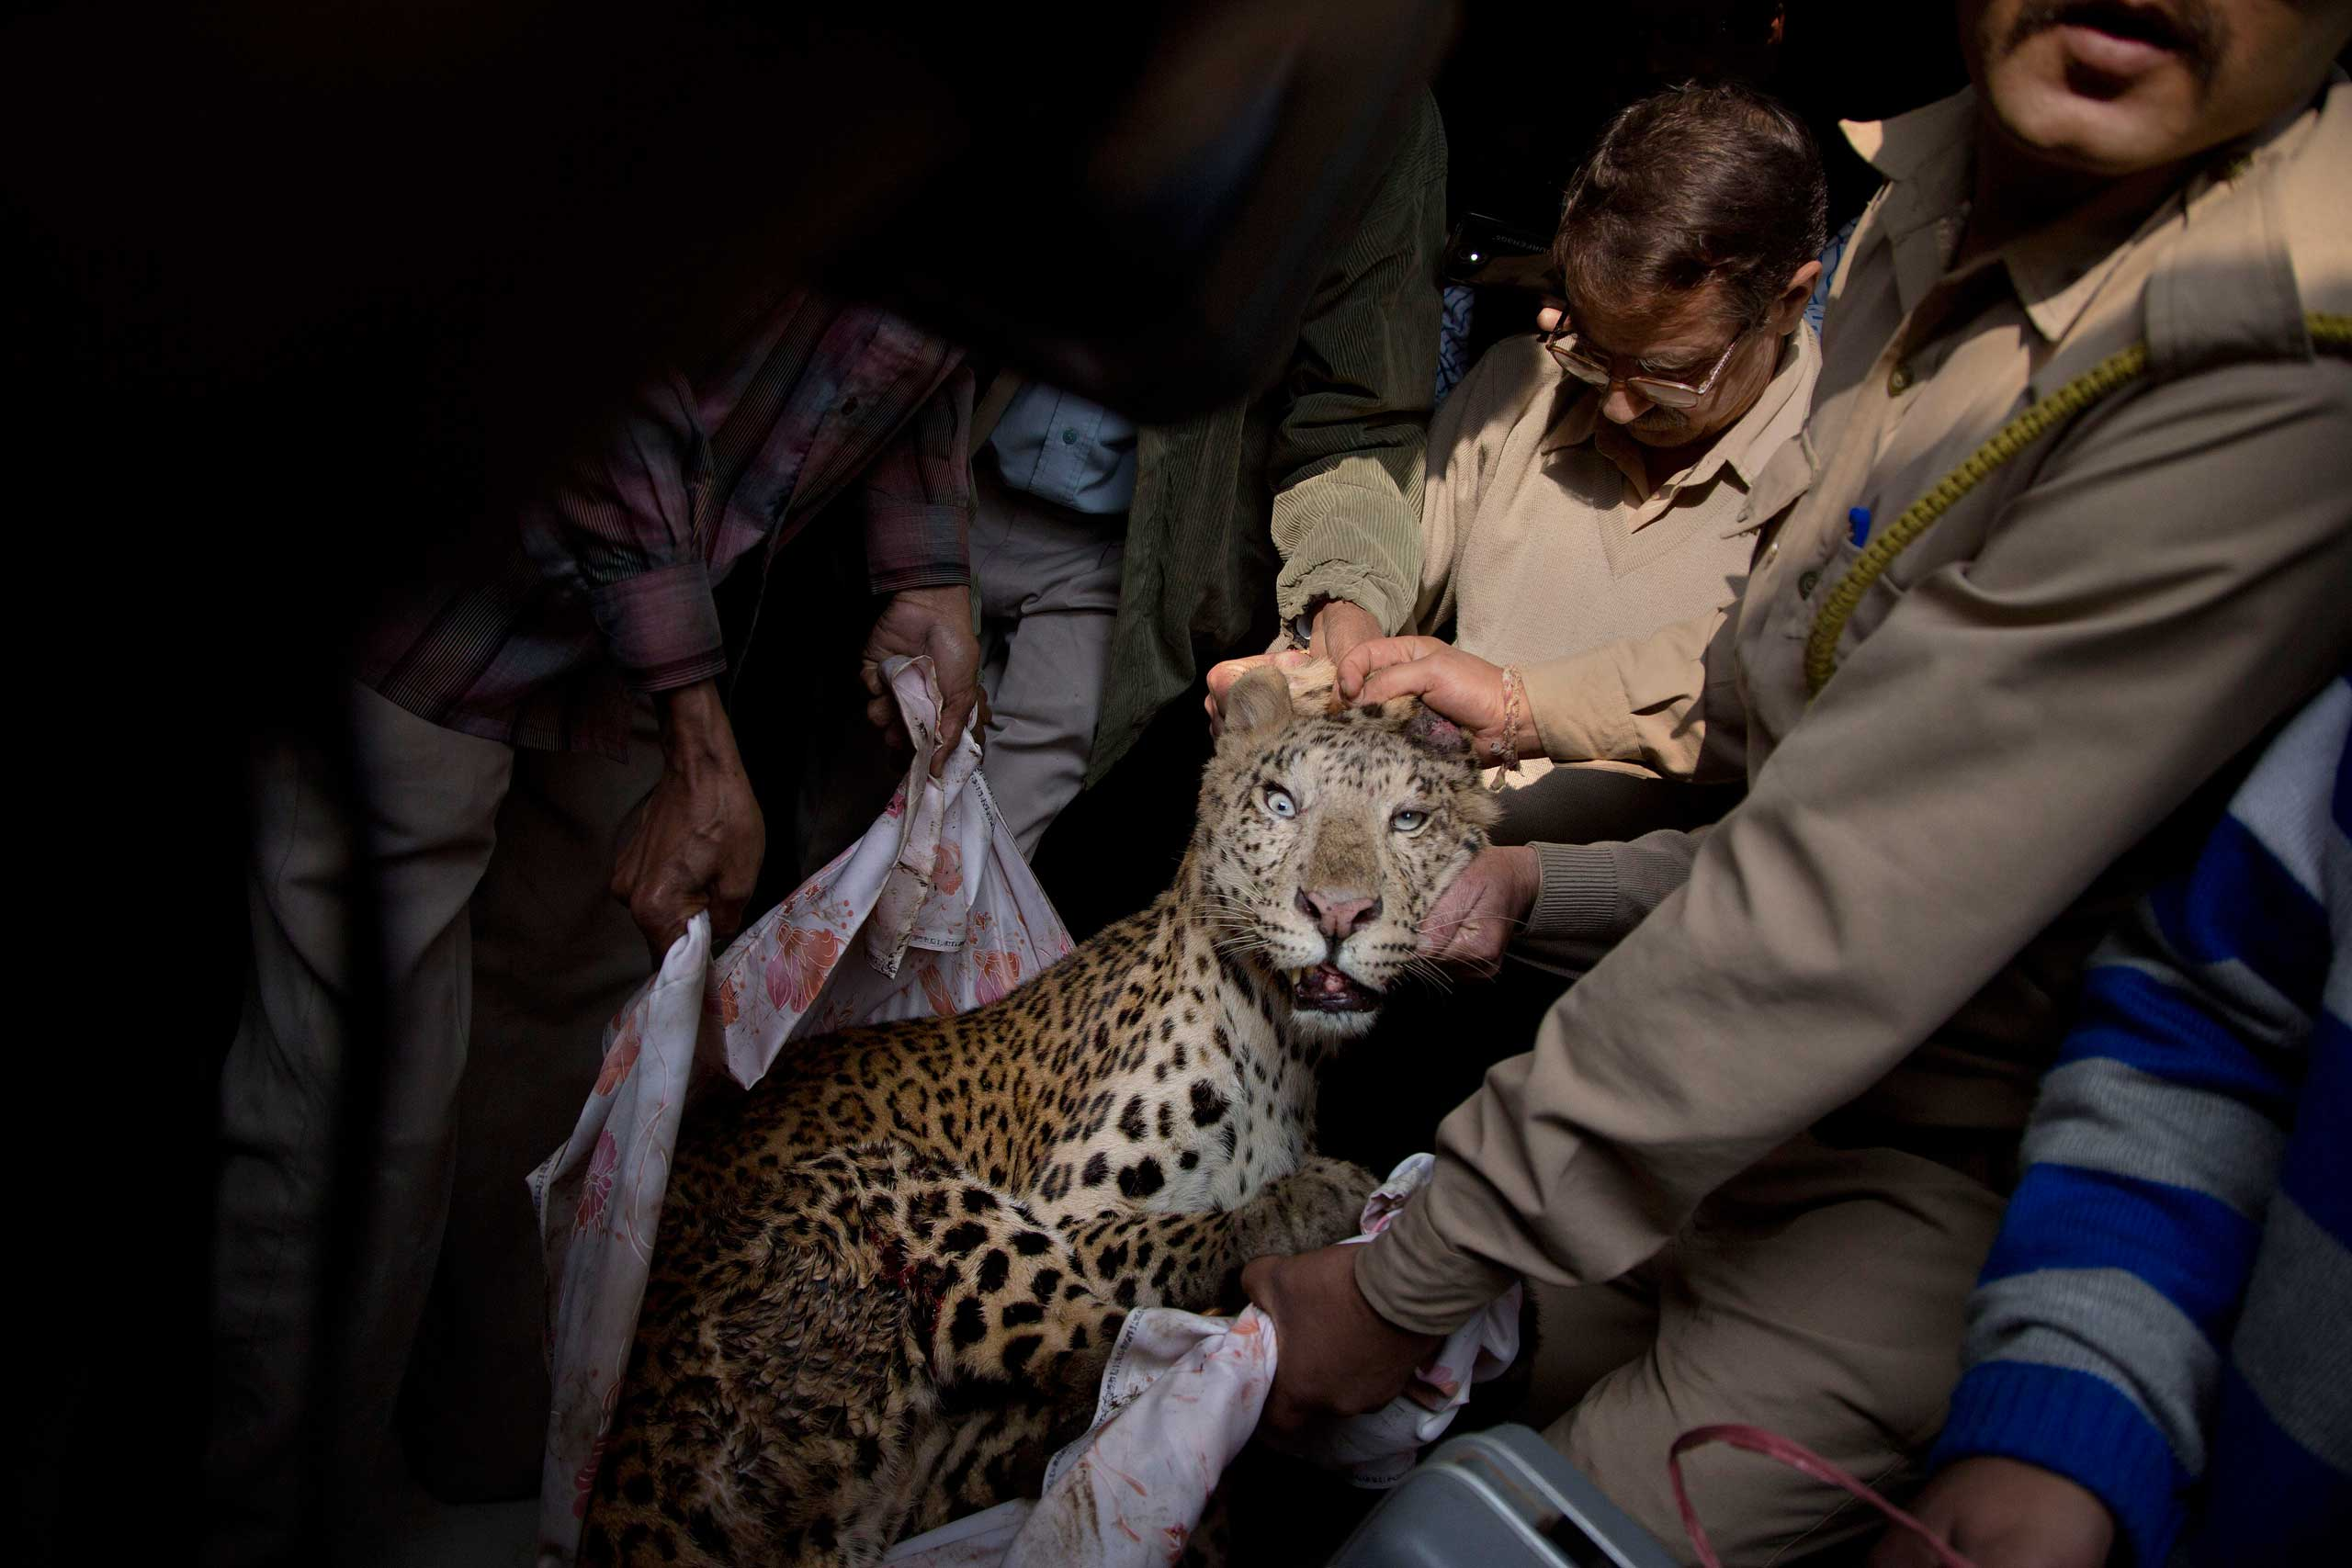 Jan. 7, 2015. Forest officials carry an injured leopard after it was tranquilized in the bedroom of a building in the center of the city in Gauhati, India.